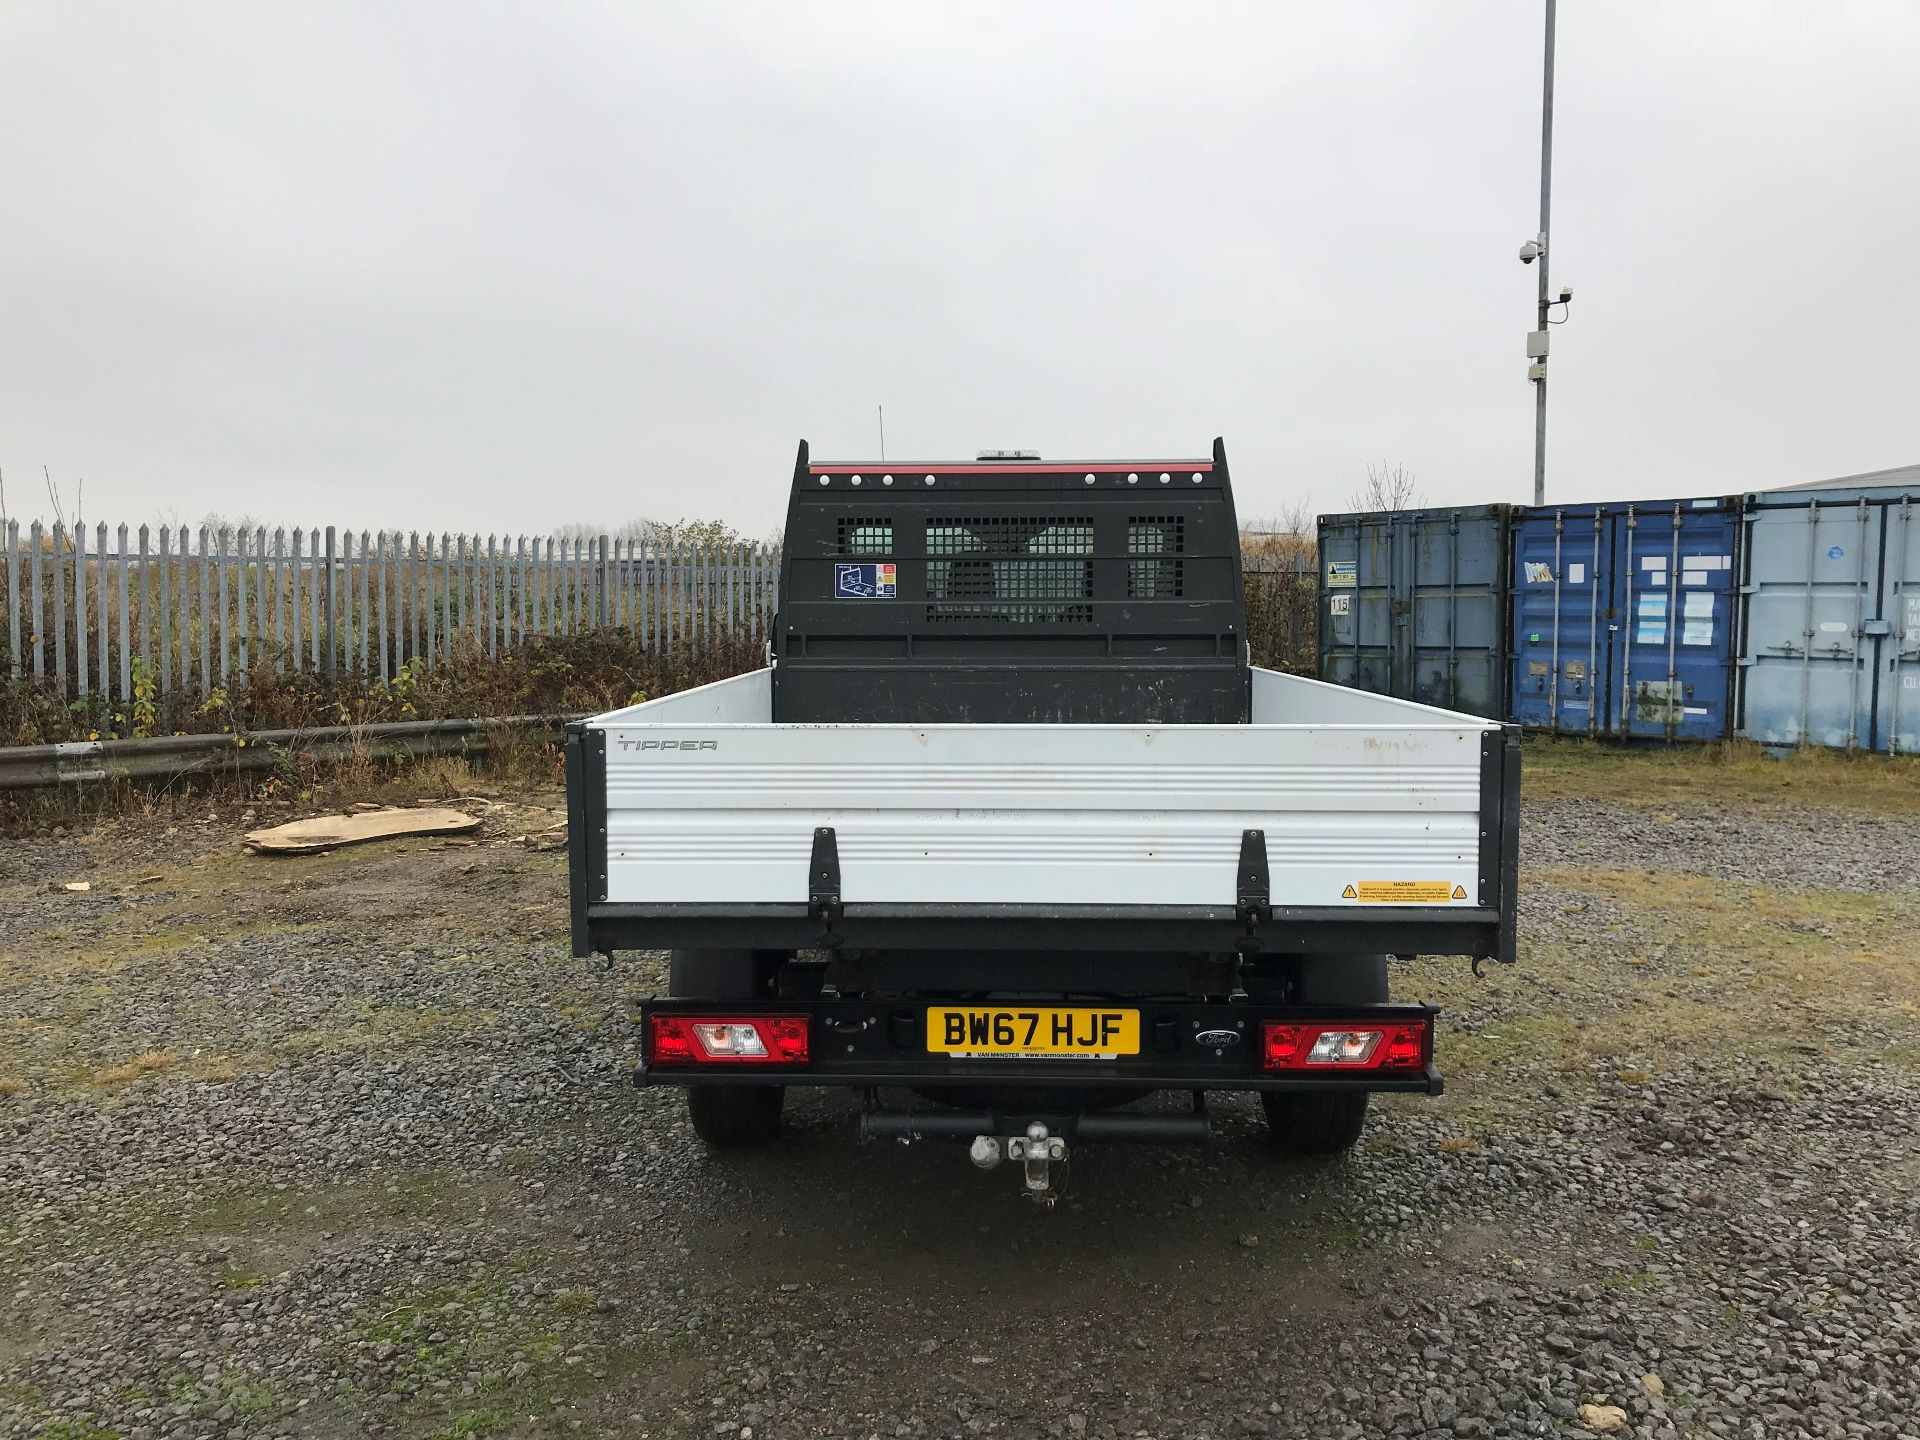 2018 Ford Transit 2.0 Tdci 130Ps One Stop Tipper (BW67HJF) Image 6